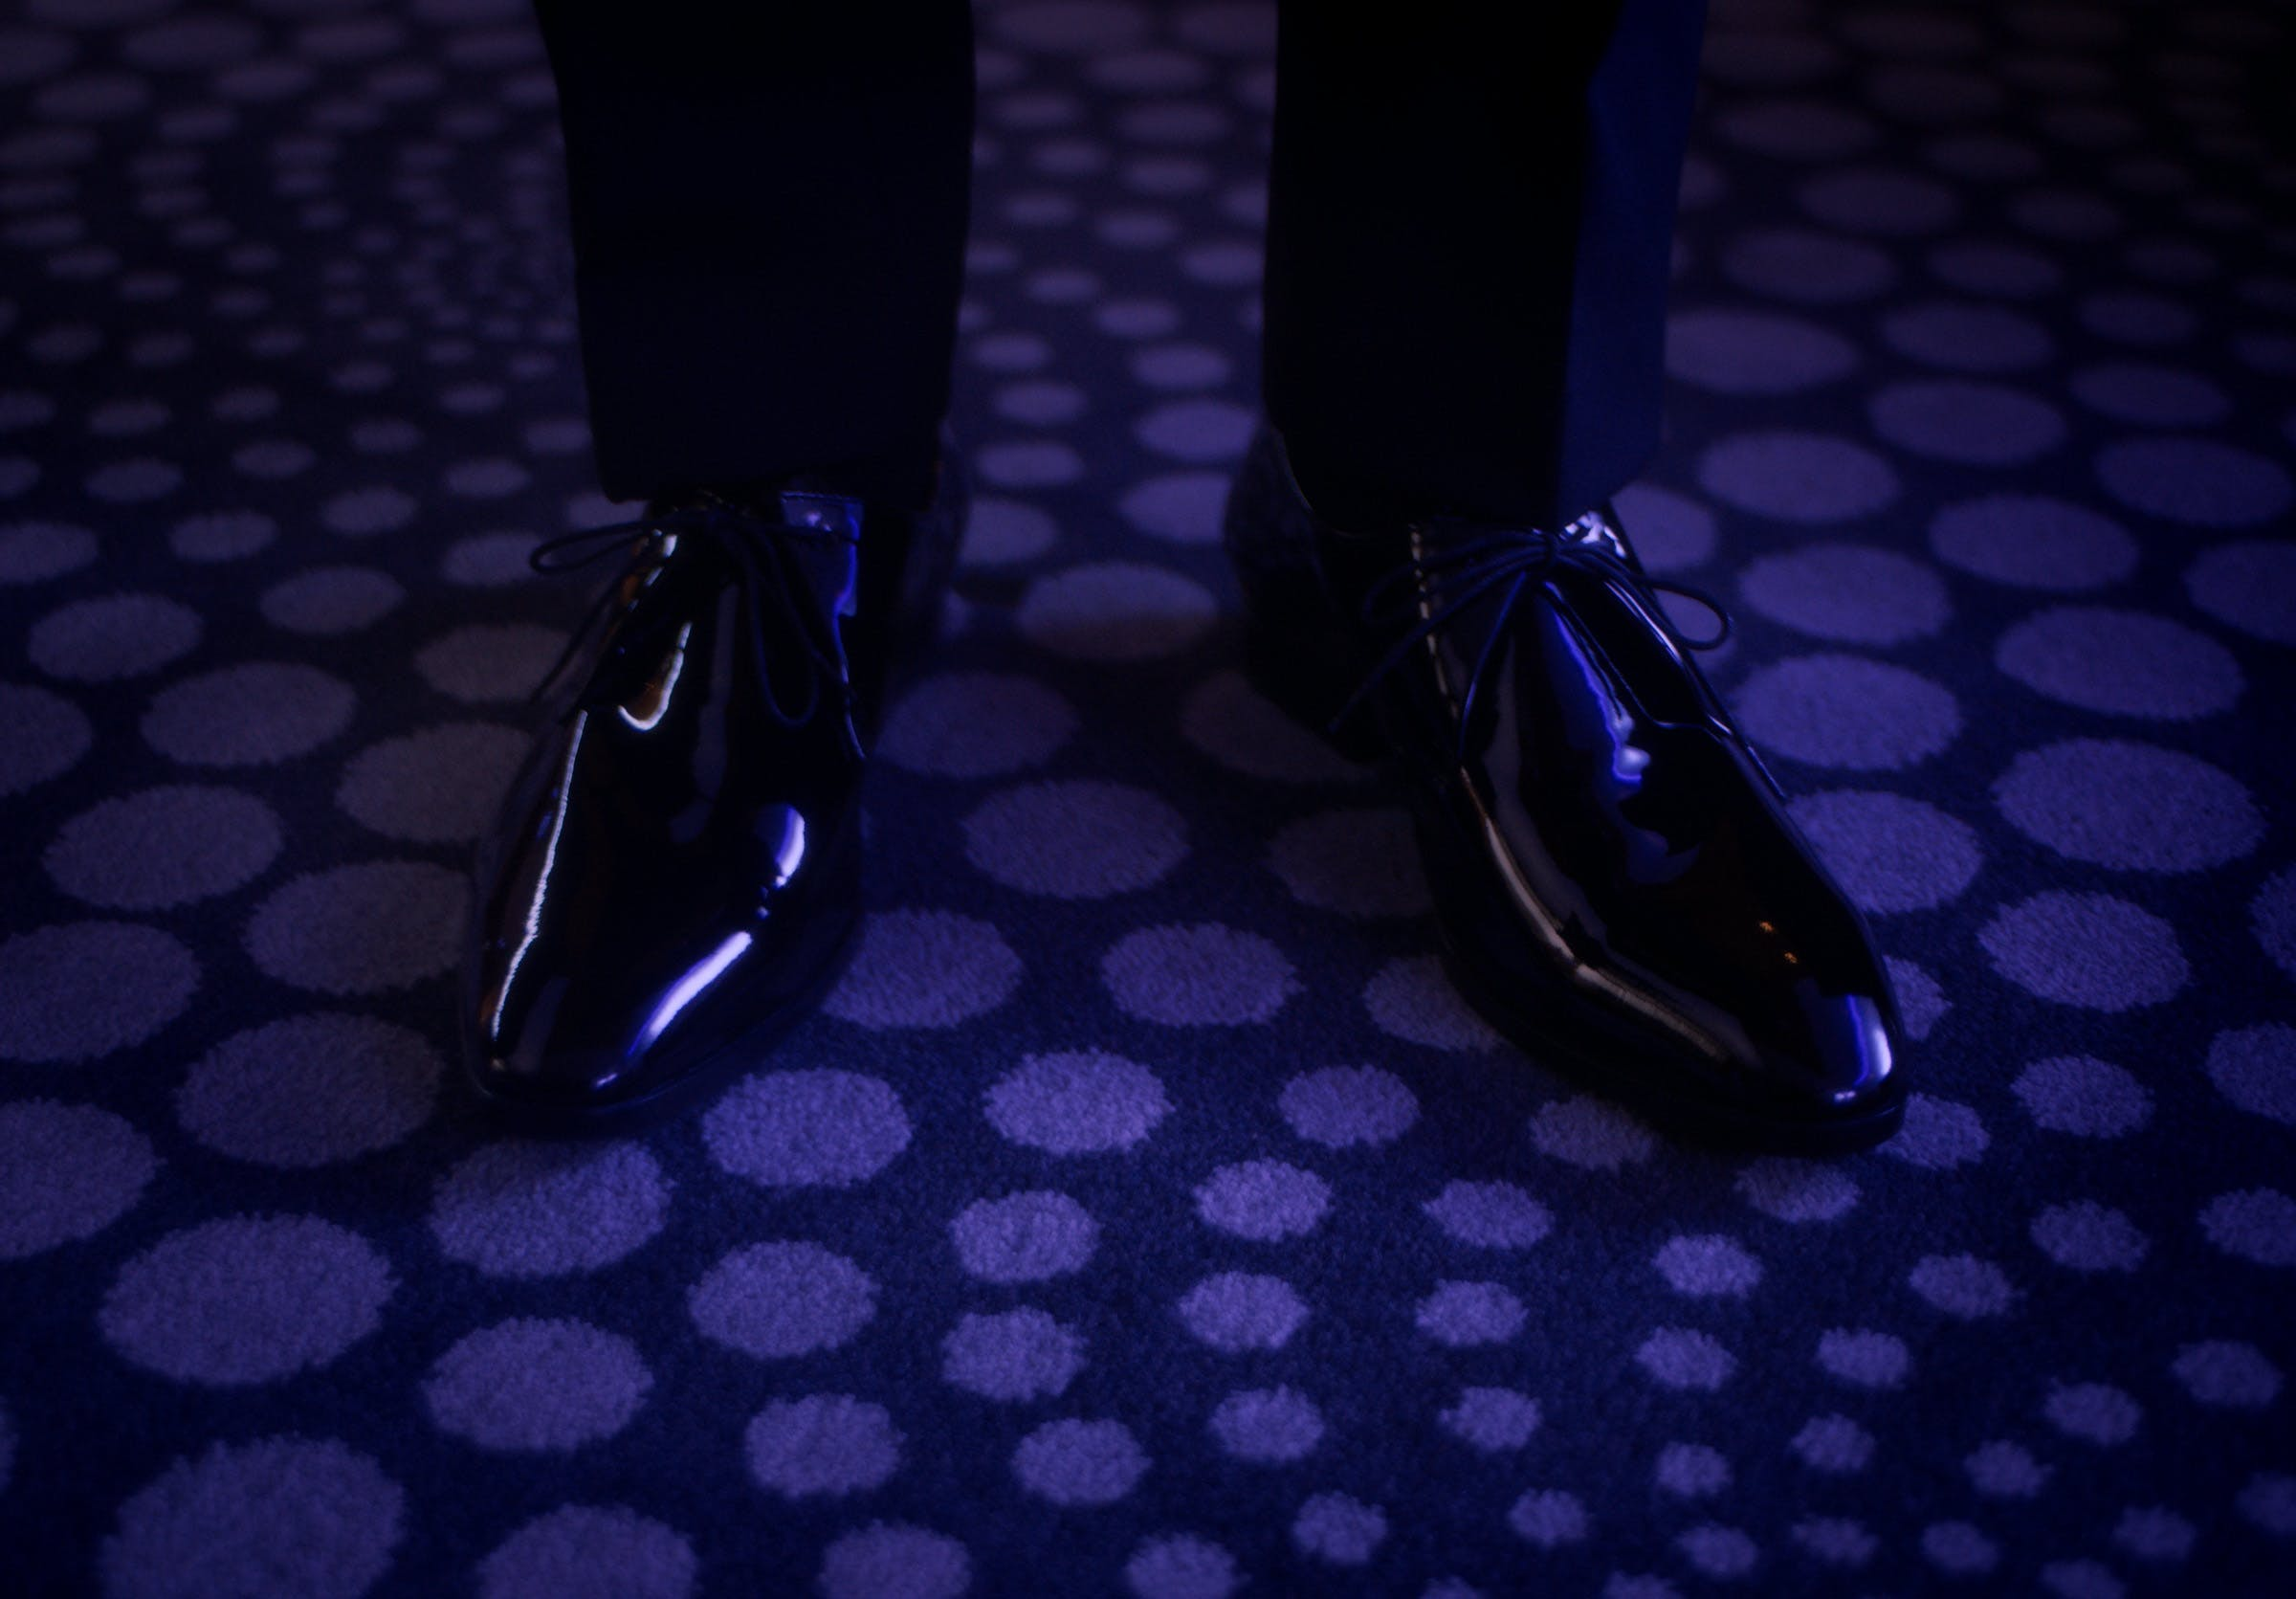 SAINT LAURENT SUMMER 21 'FRENCH WATER' FILM BY JIM JARMUSCH